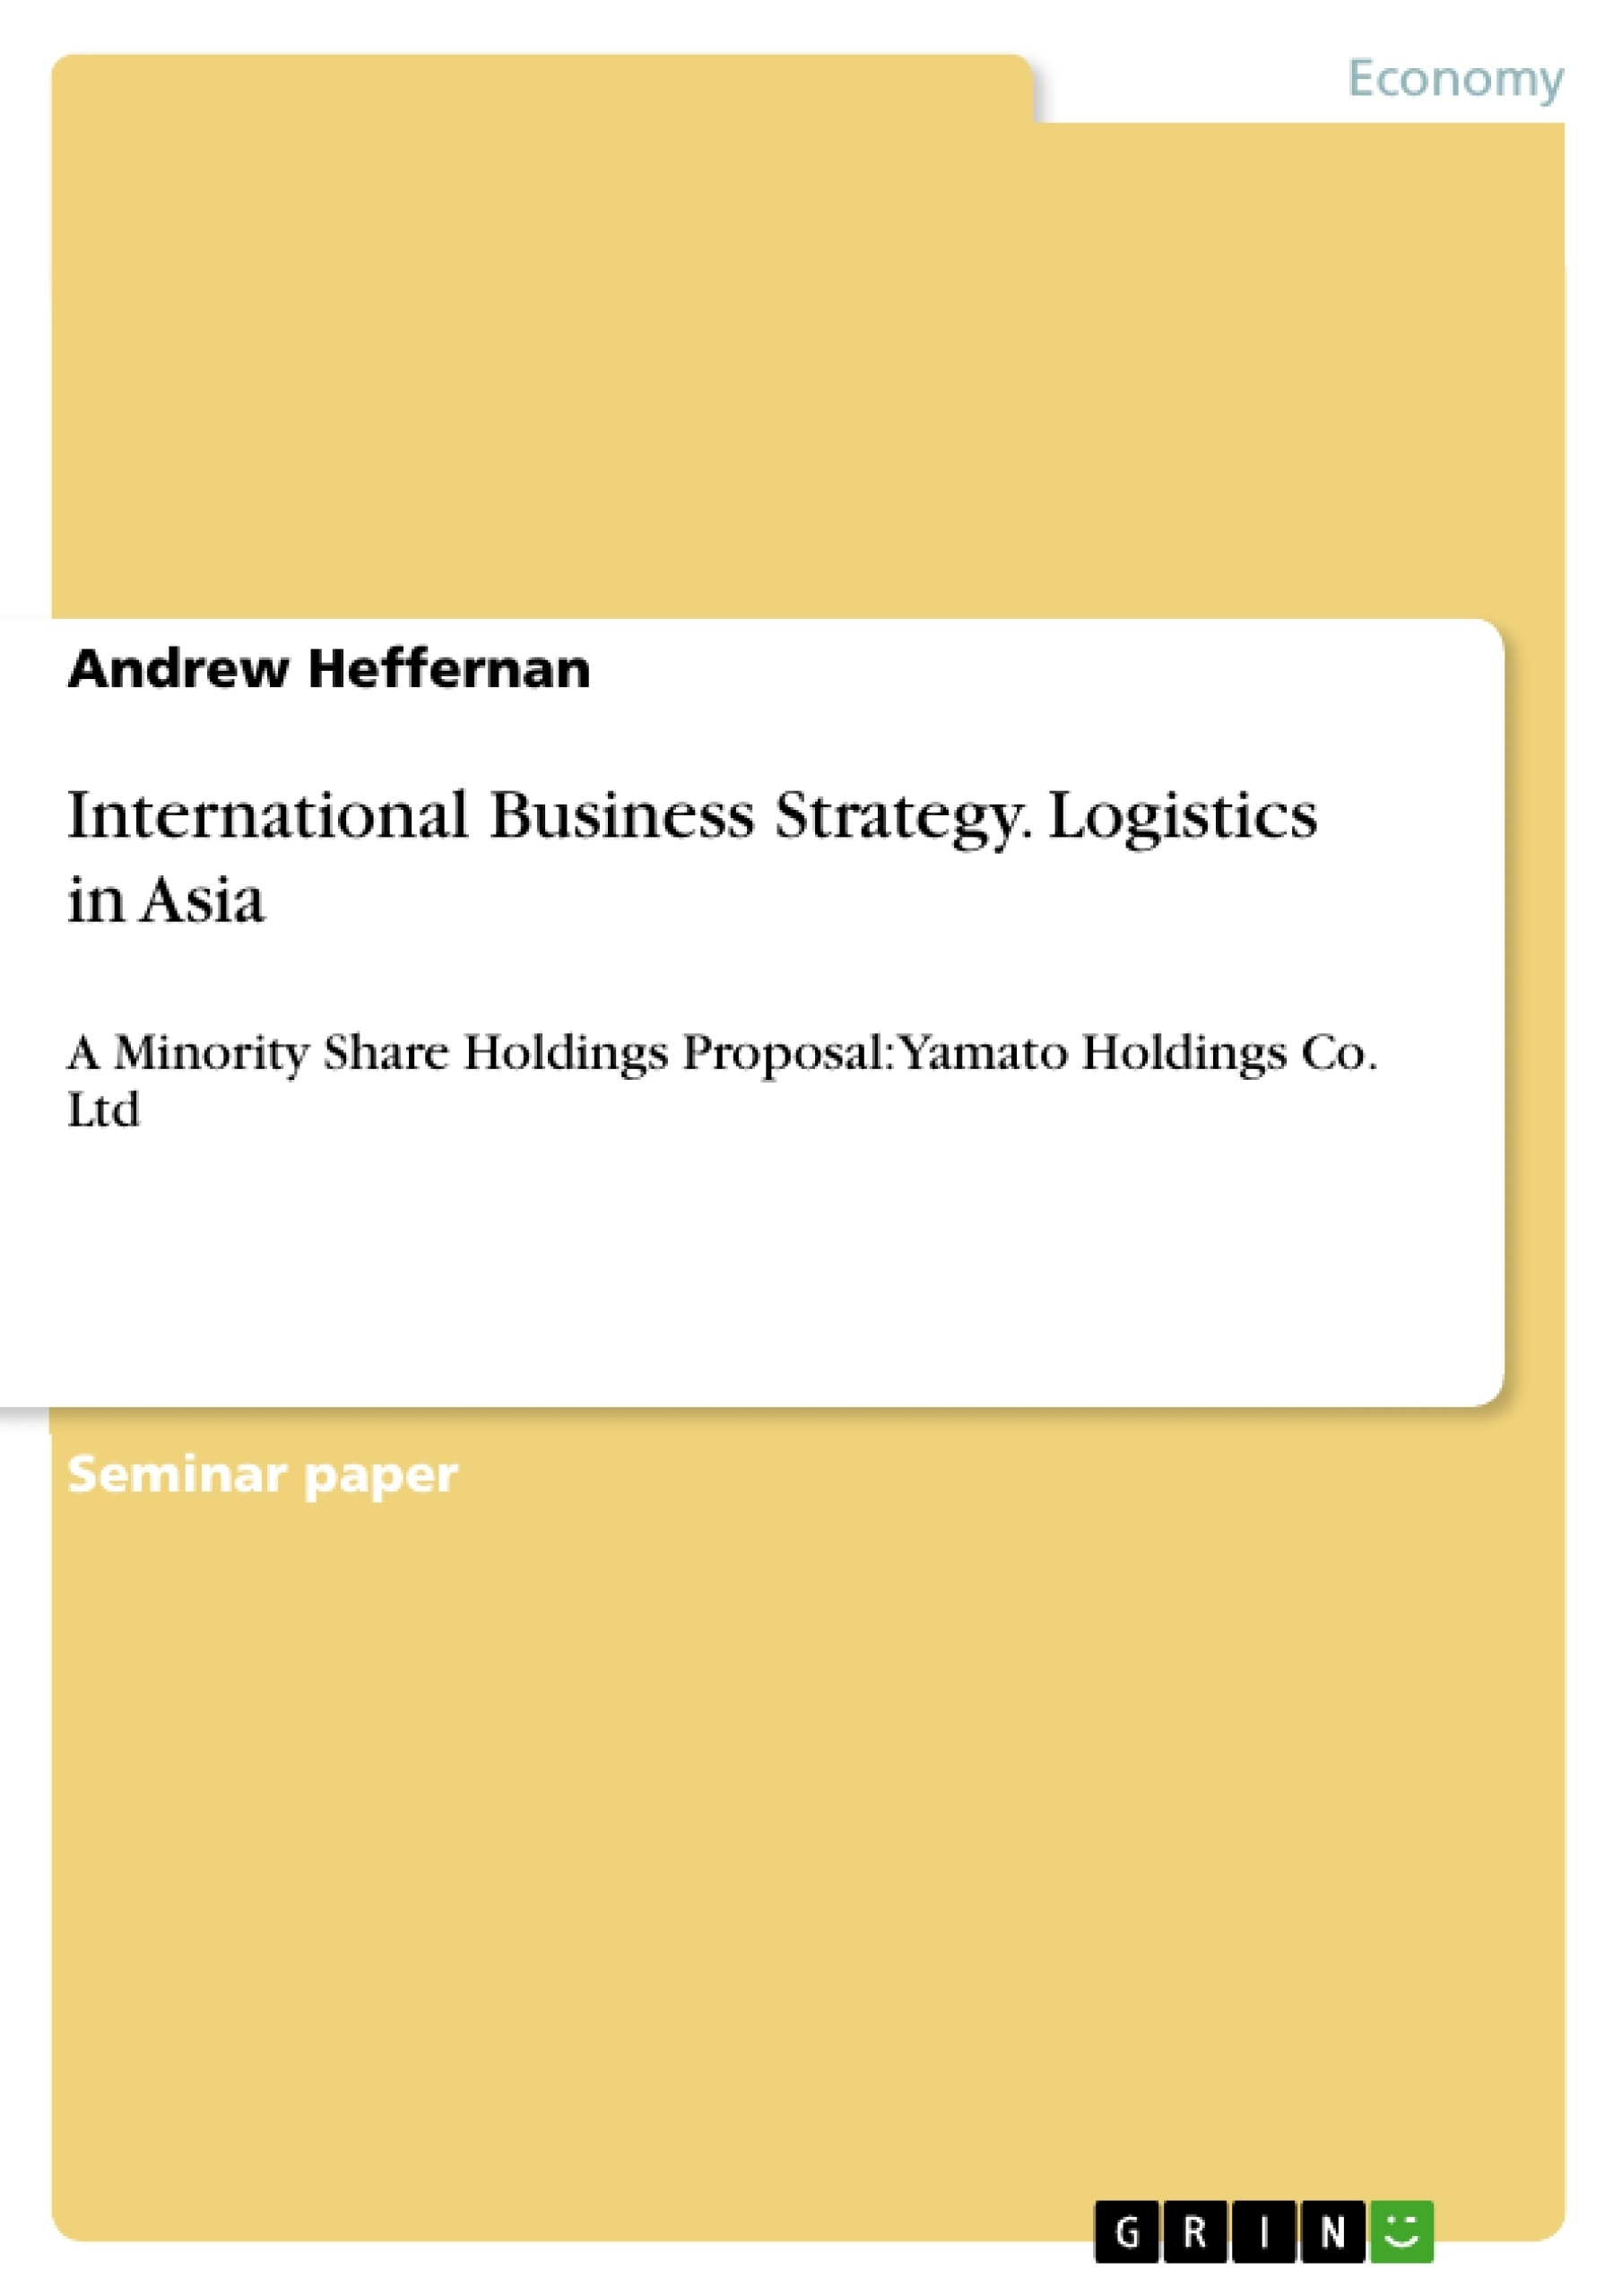 Title: International Business Strategy. Logistics in Asia